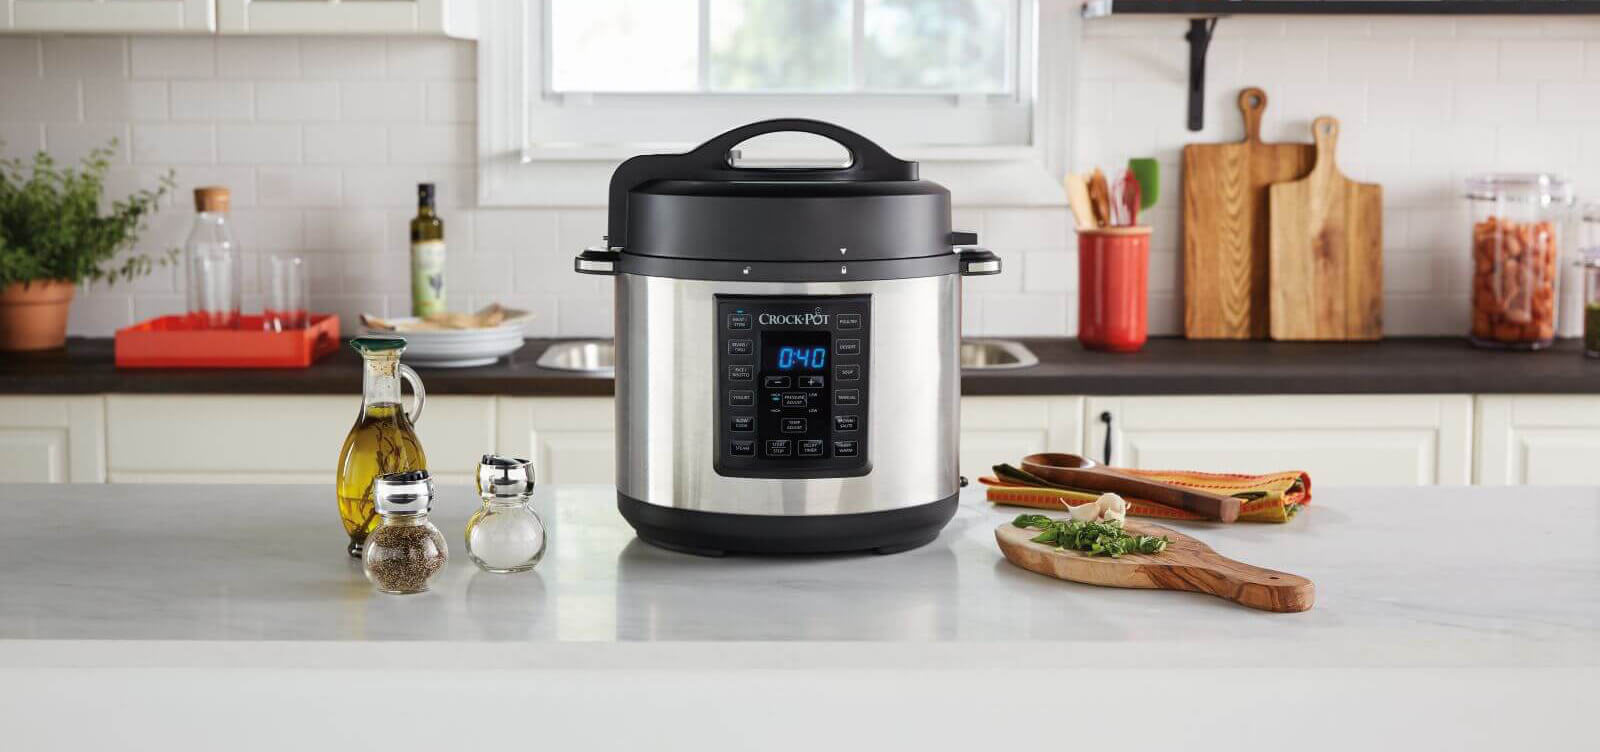 MultiCooker Ekspress Crock-Pot 5.6l, 12w1 CSC051X